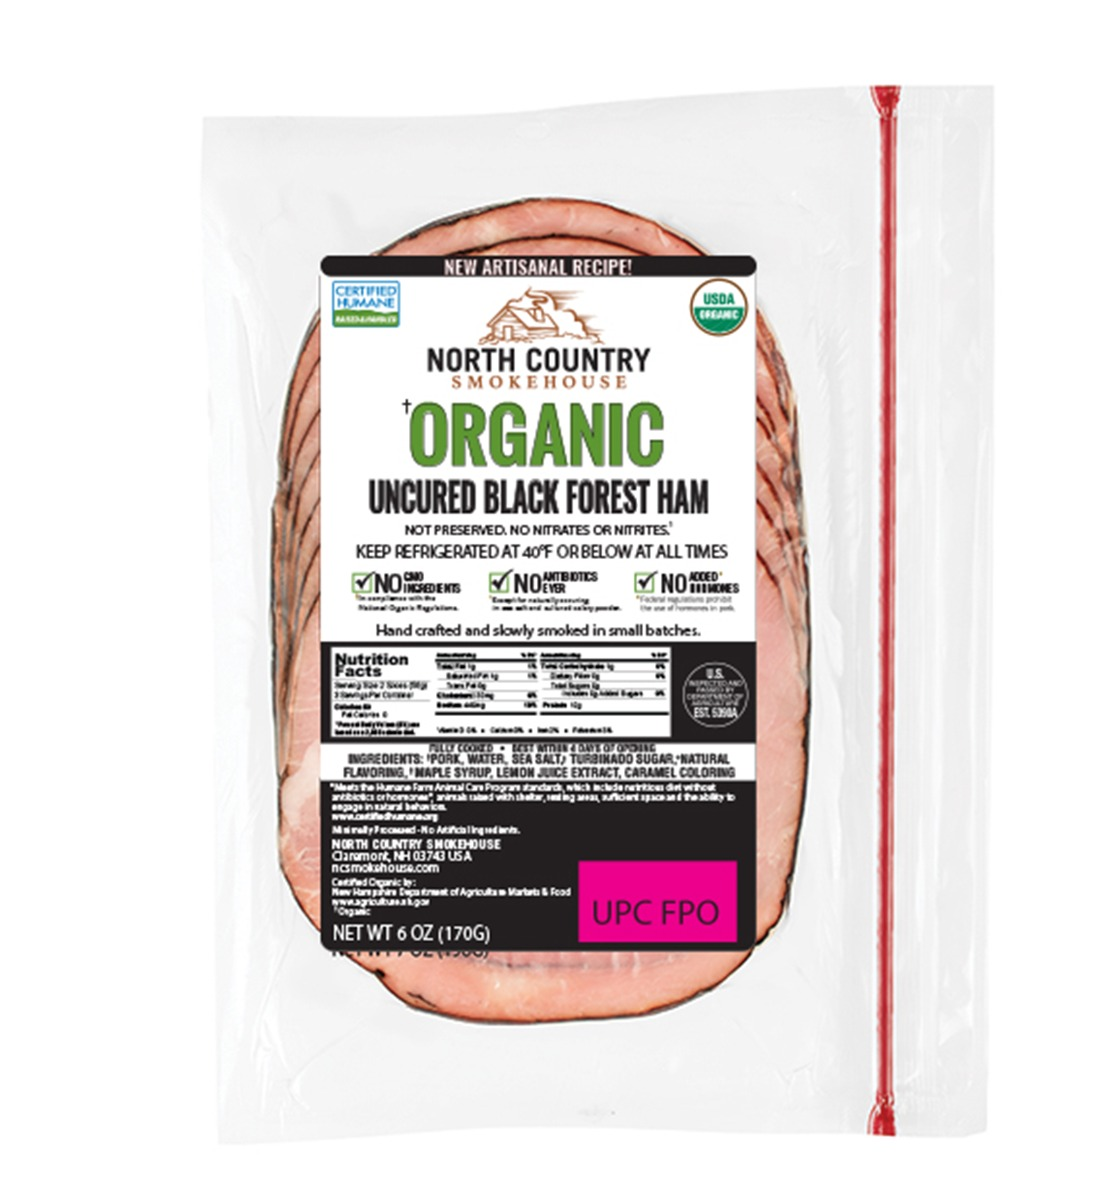 Organic Black Forest Deli Ham - 3, 6 oz. packages